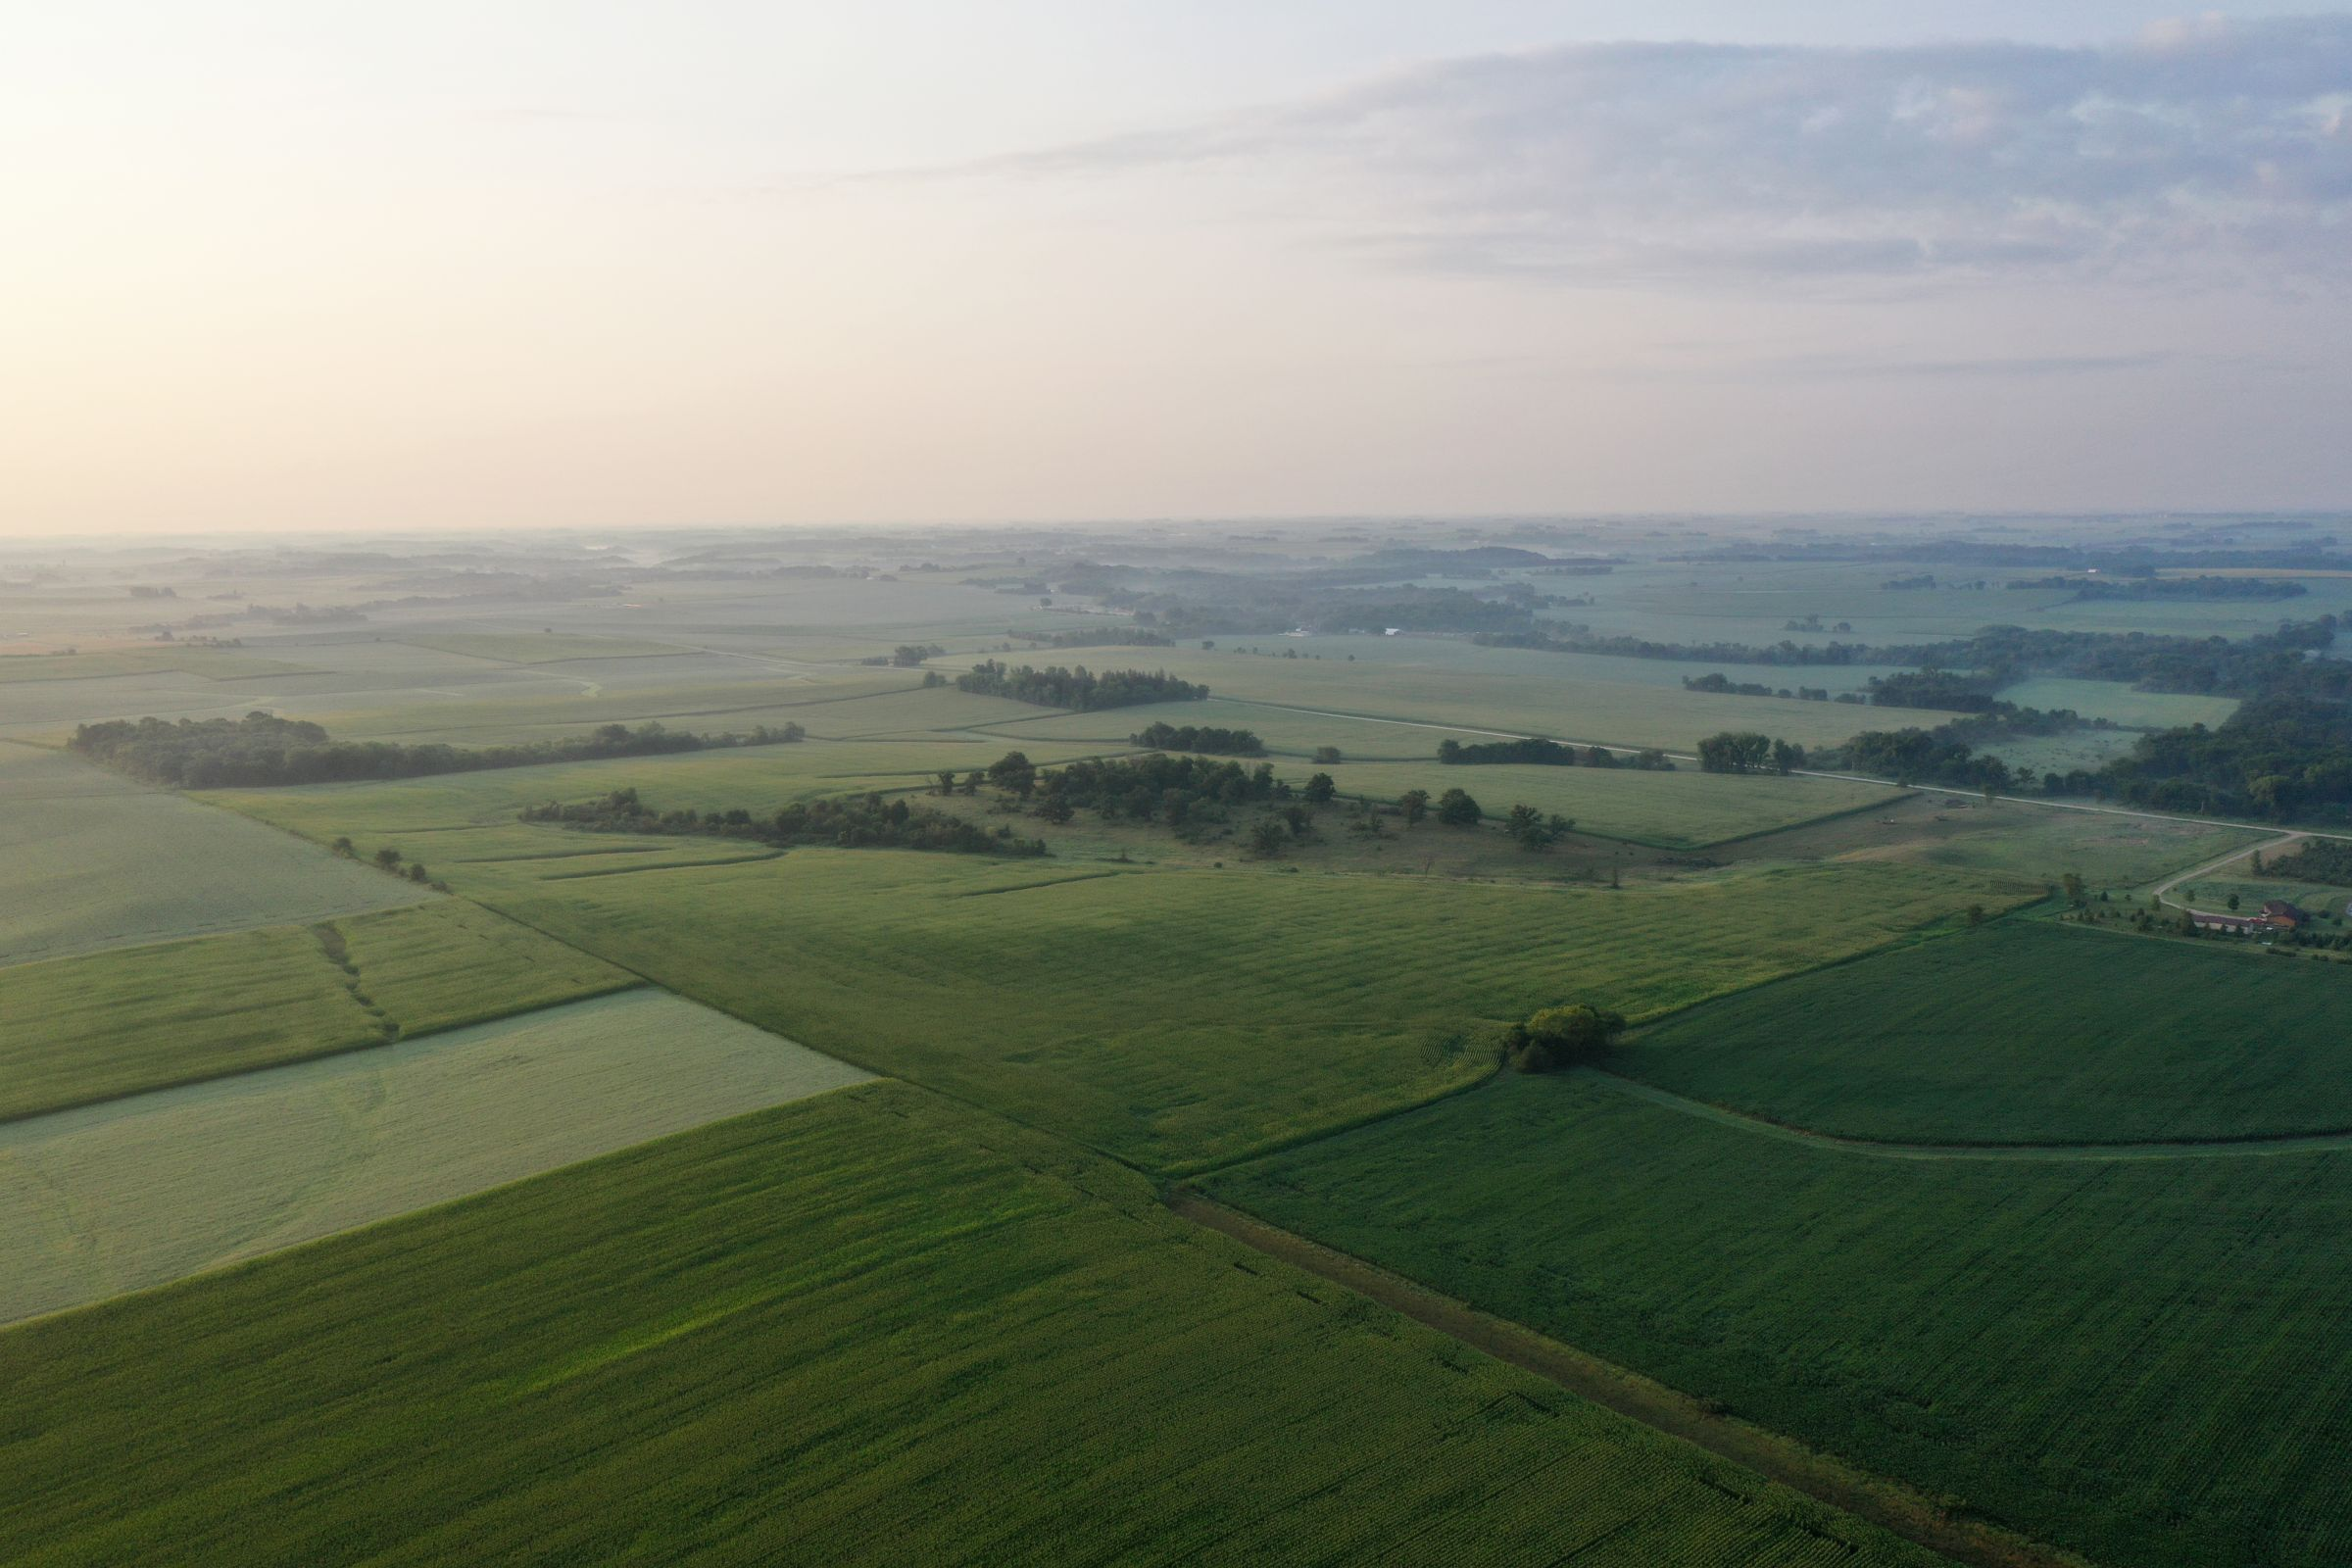 auctions-land-fayette-county-iowa-233-acres-listing-number-15645-3-2021-07-21-143932.JPG